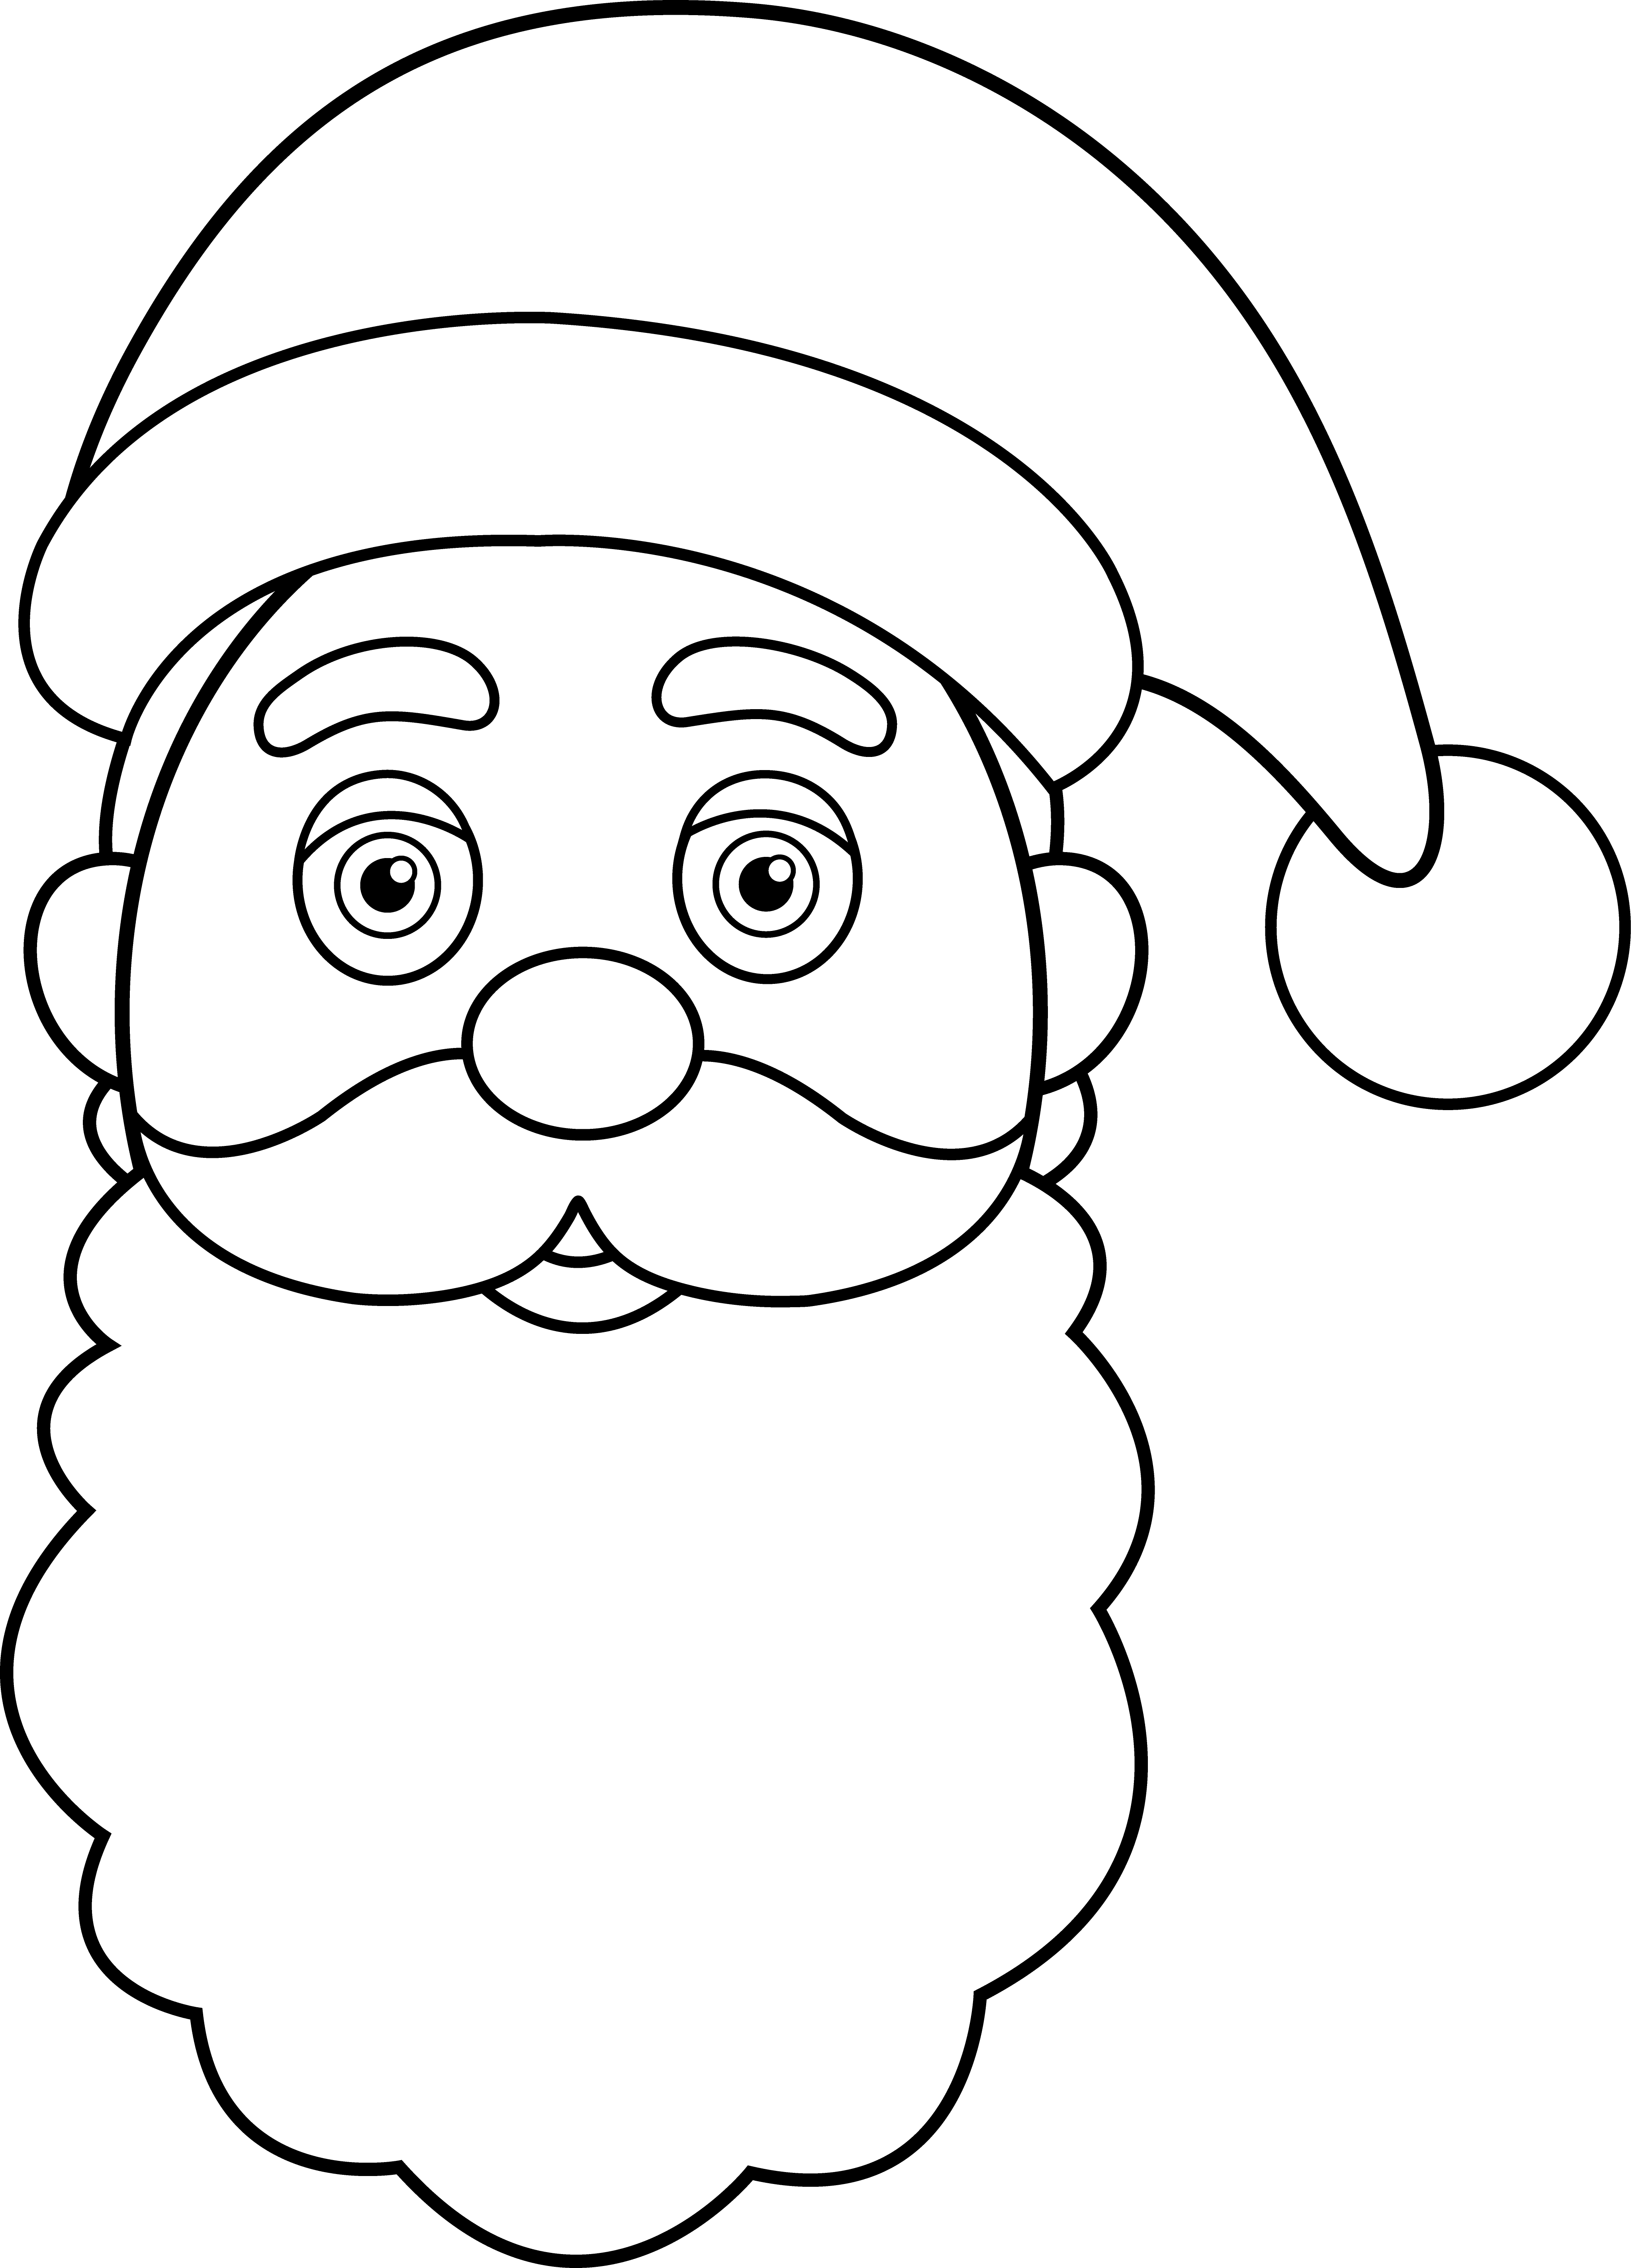 Father clipart black and white. Face group line art